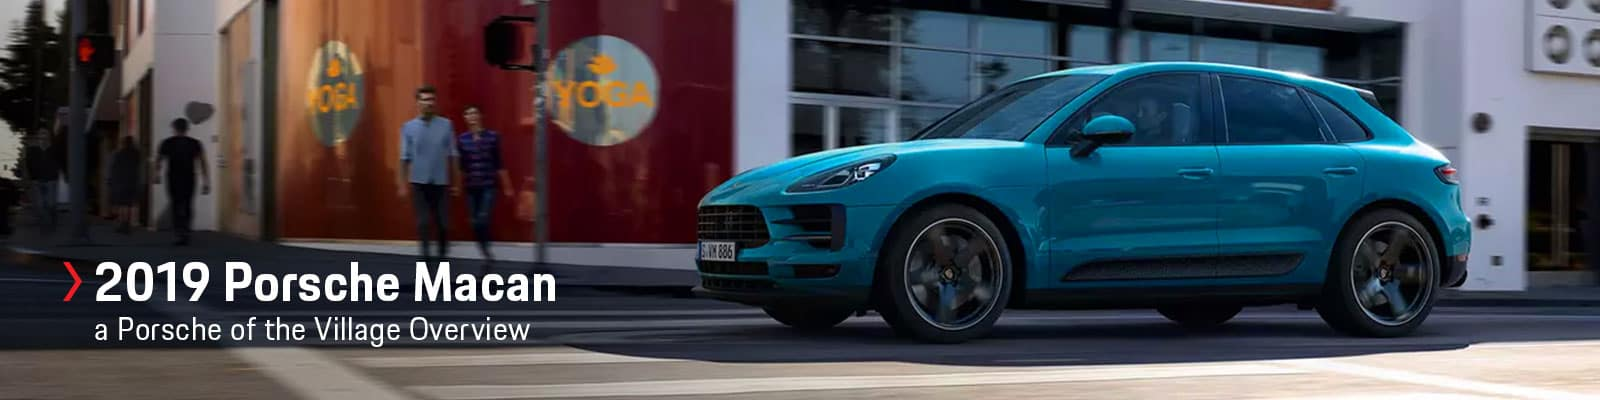 2019 Porsche Macan Model Overview at Porsche of the Village